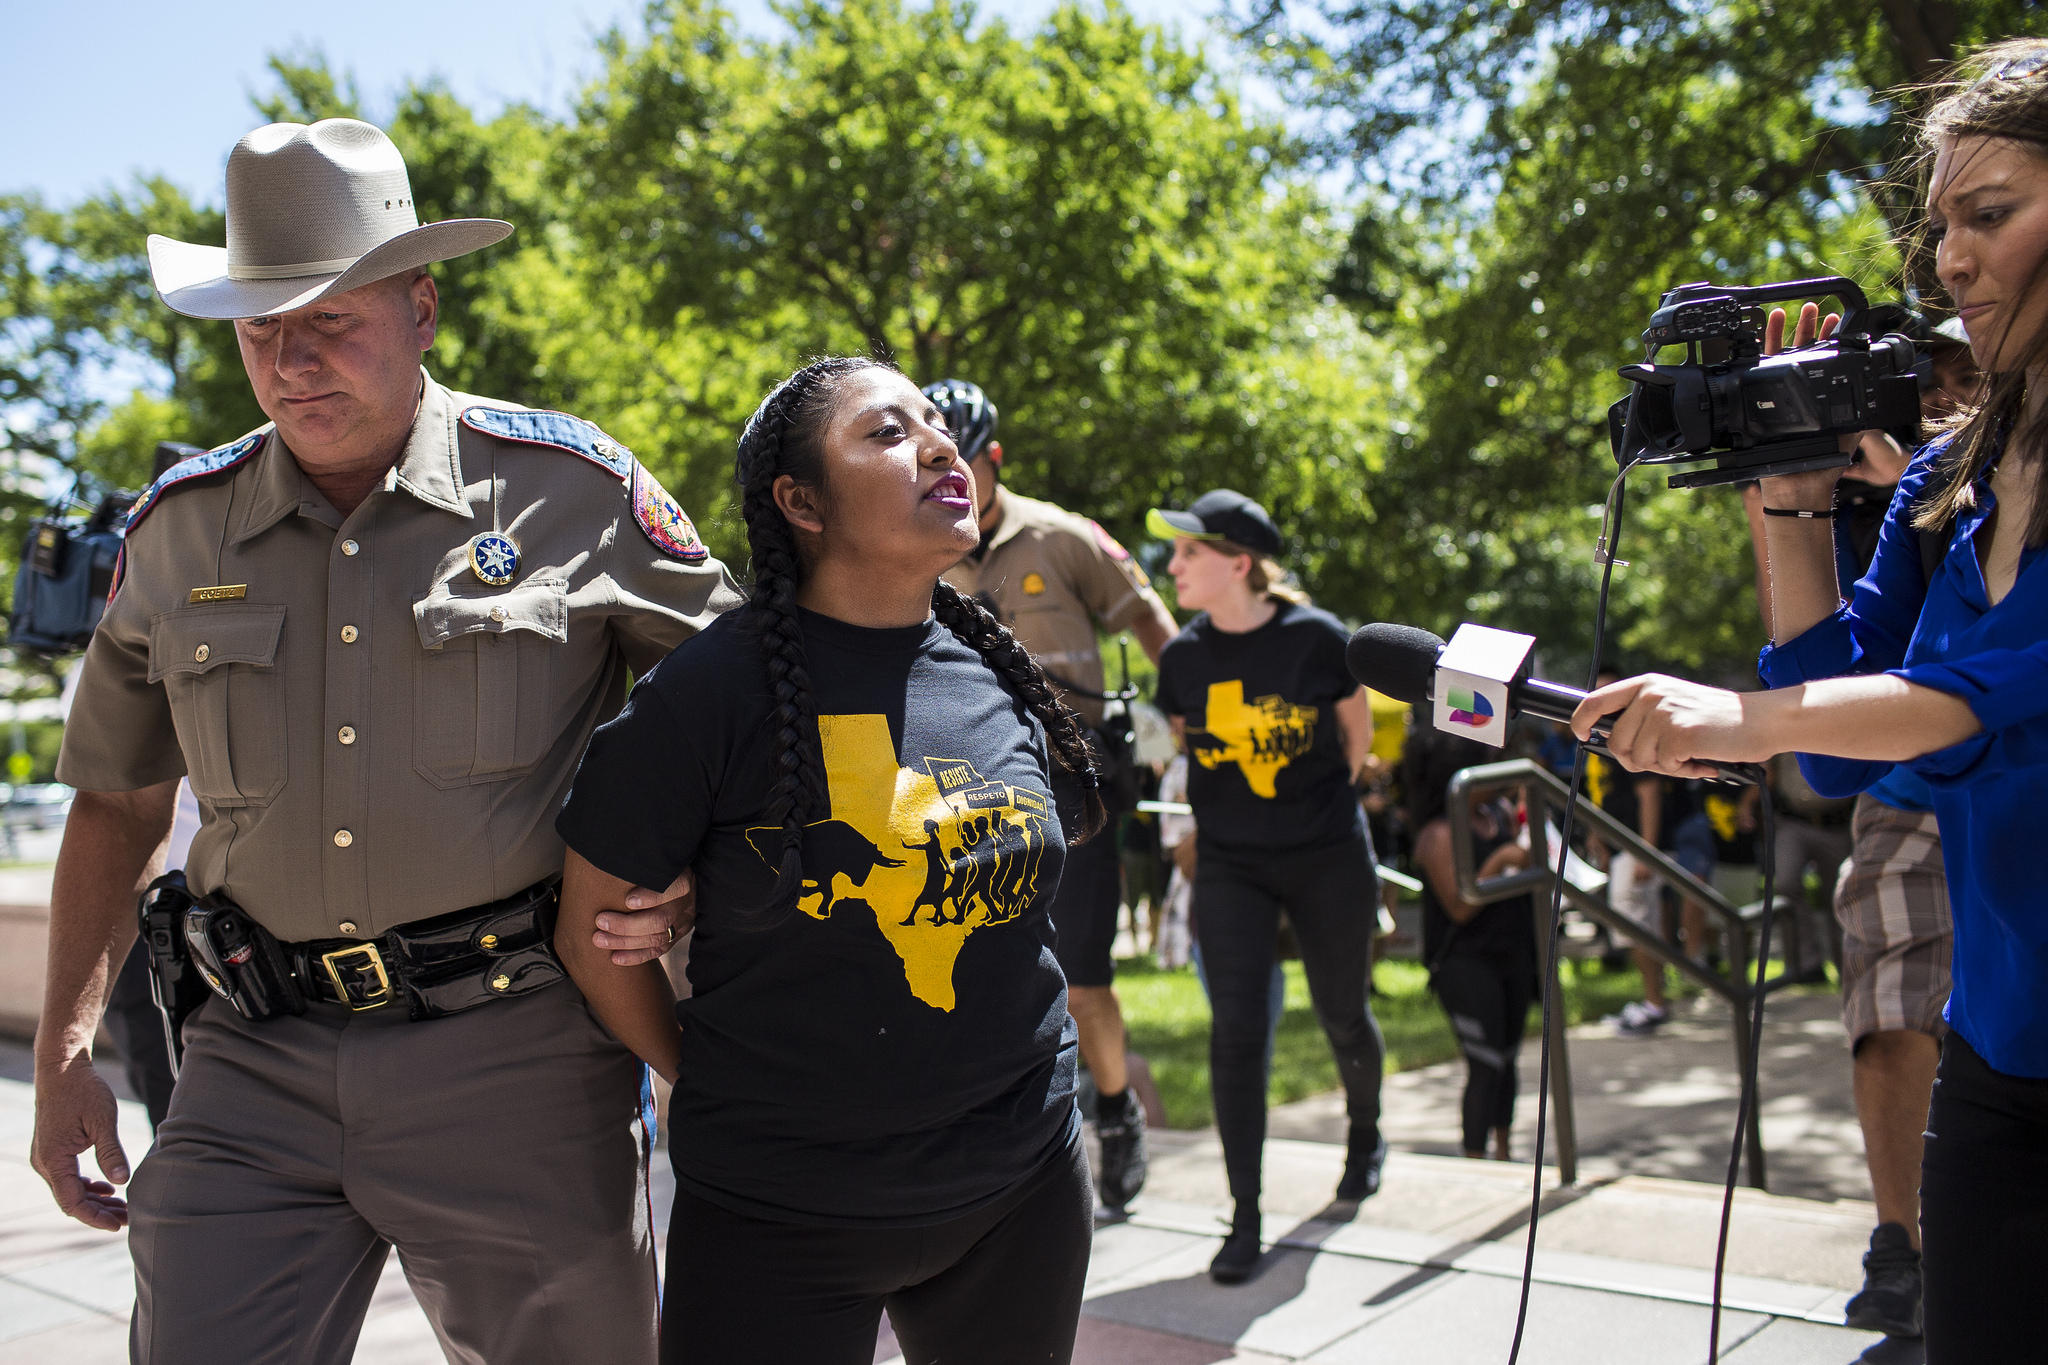 Arrested in Civil Disobedience Action Led by Immigrant Youth